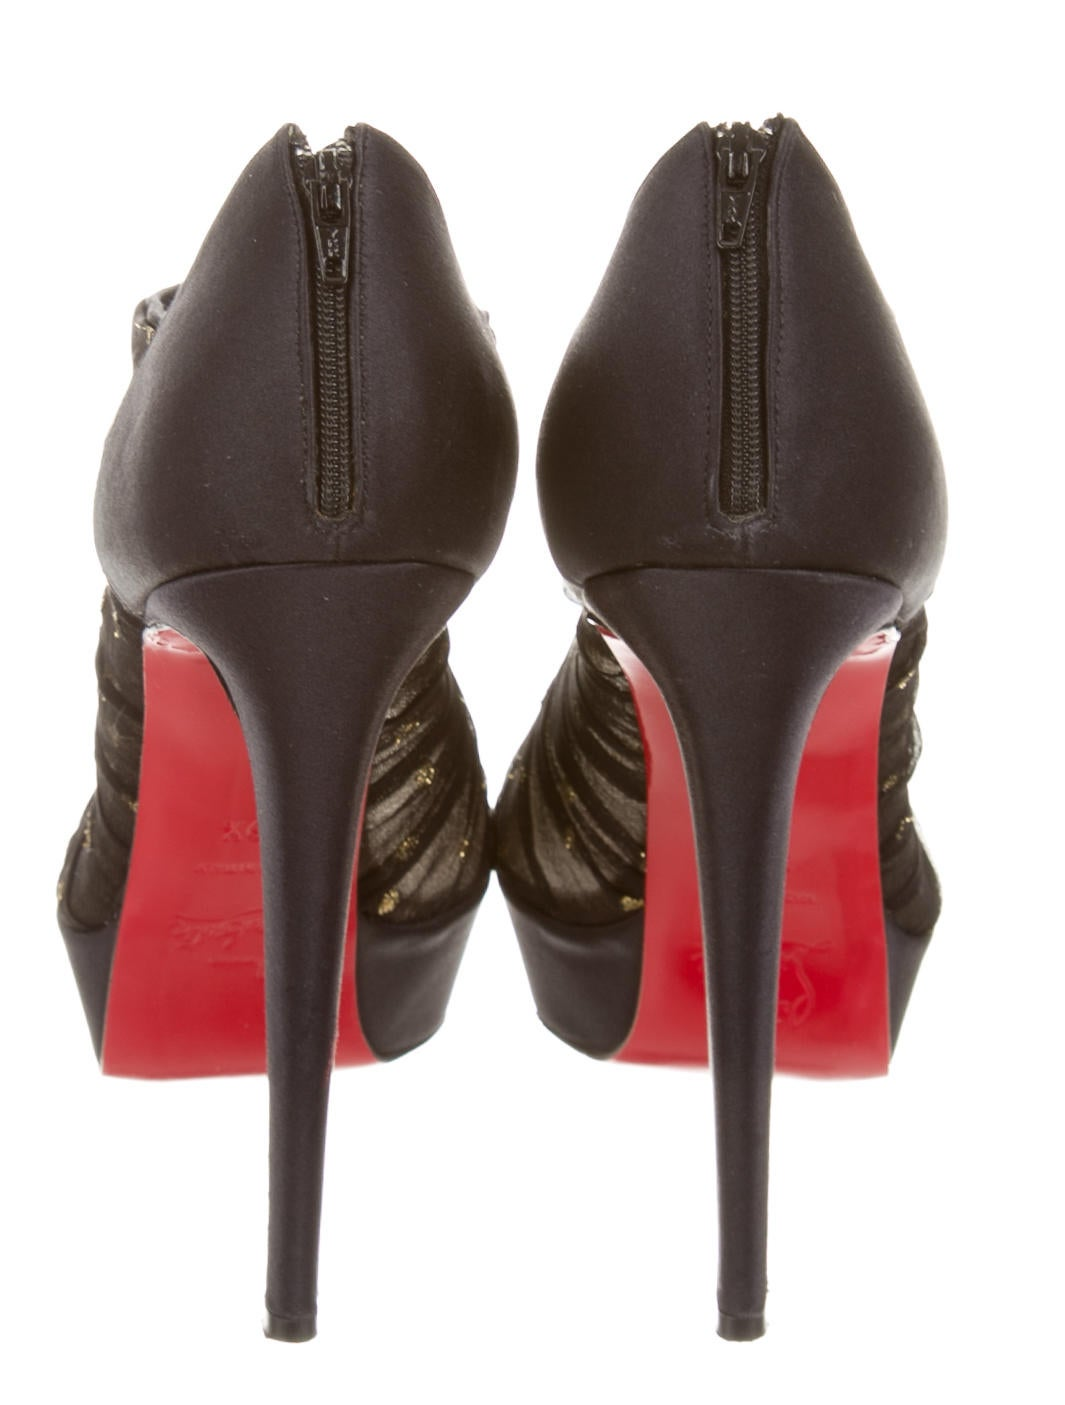 black spiked christian louboutin - Christian Louboutin Ruffled Peep-Toe Booties - Shoes - CHT46157 ...